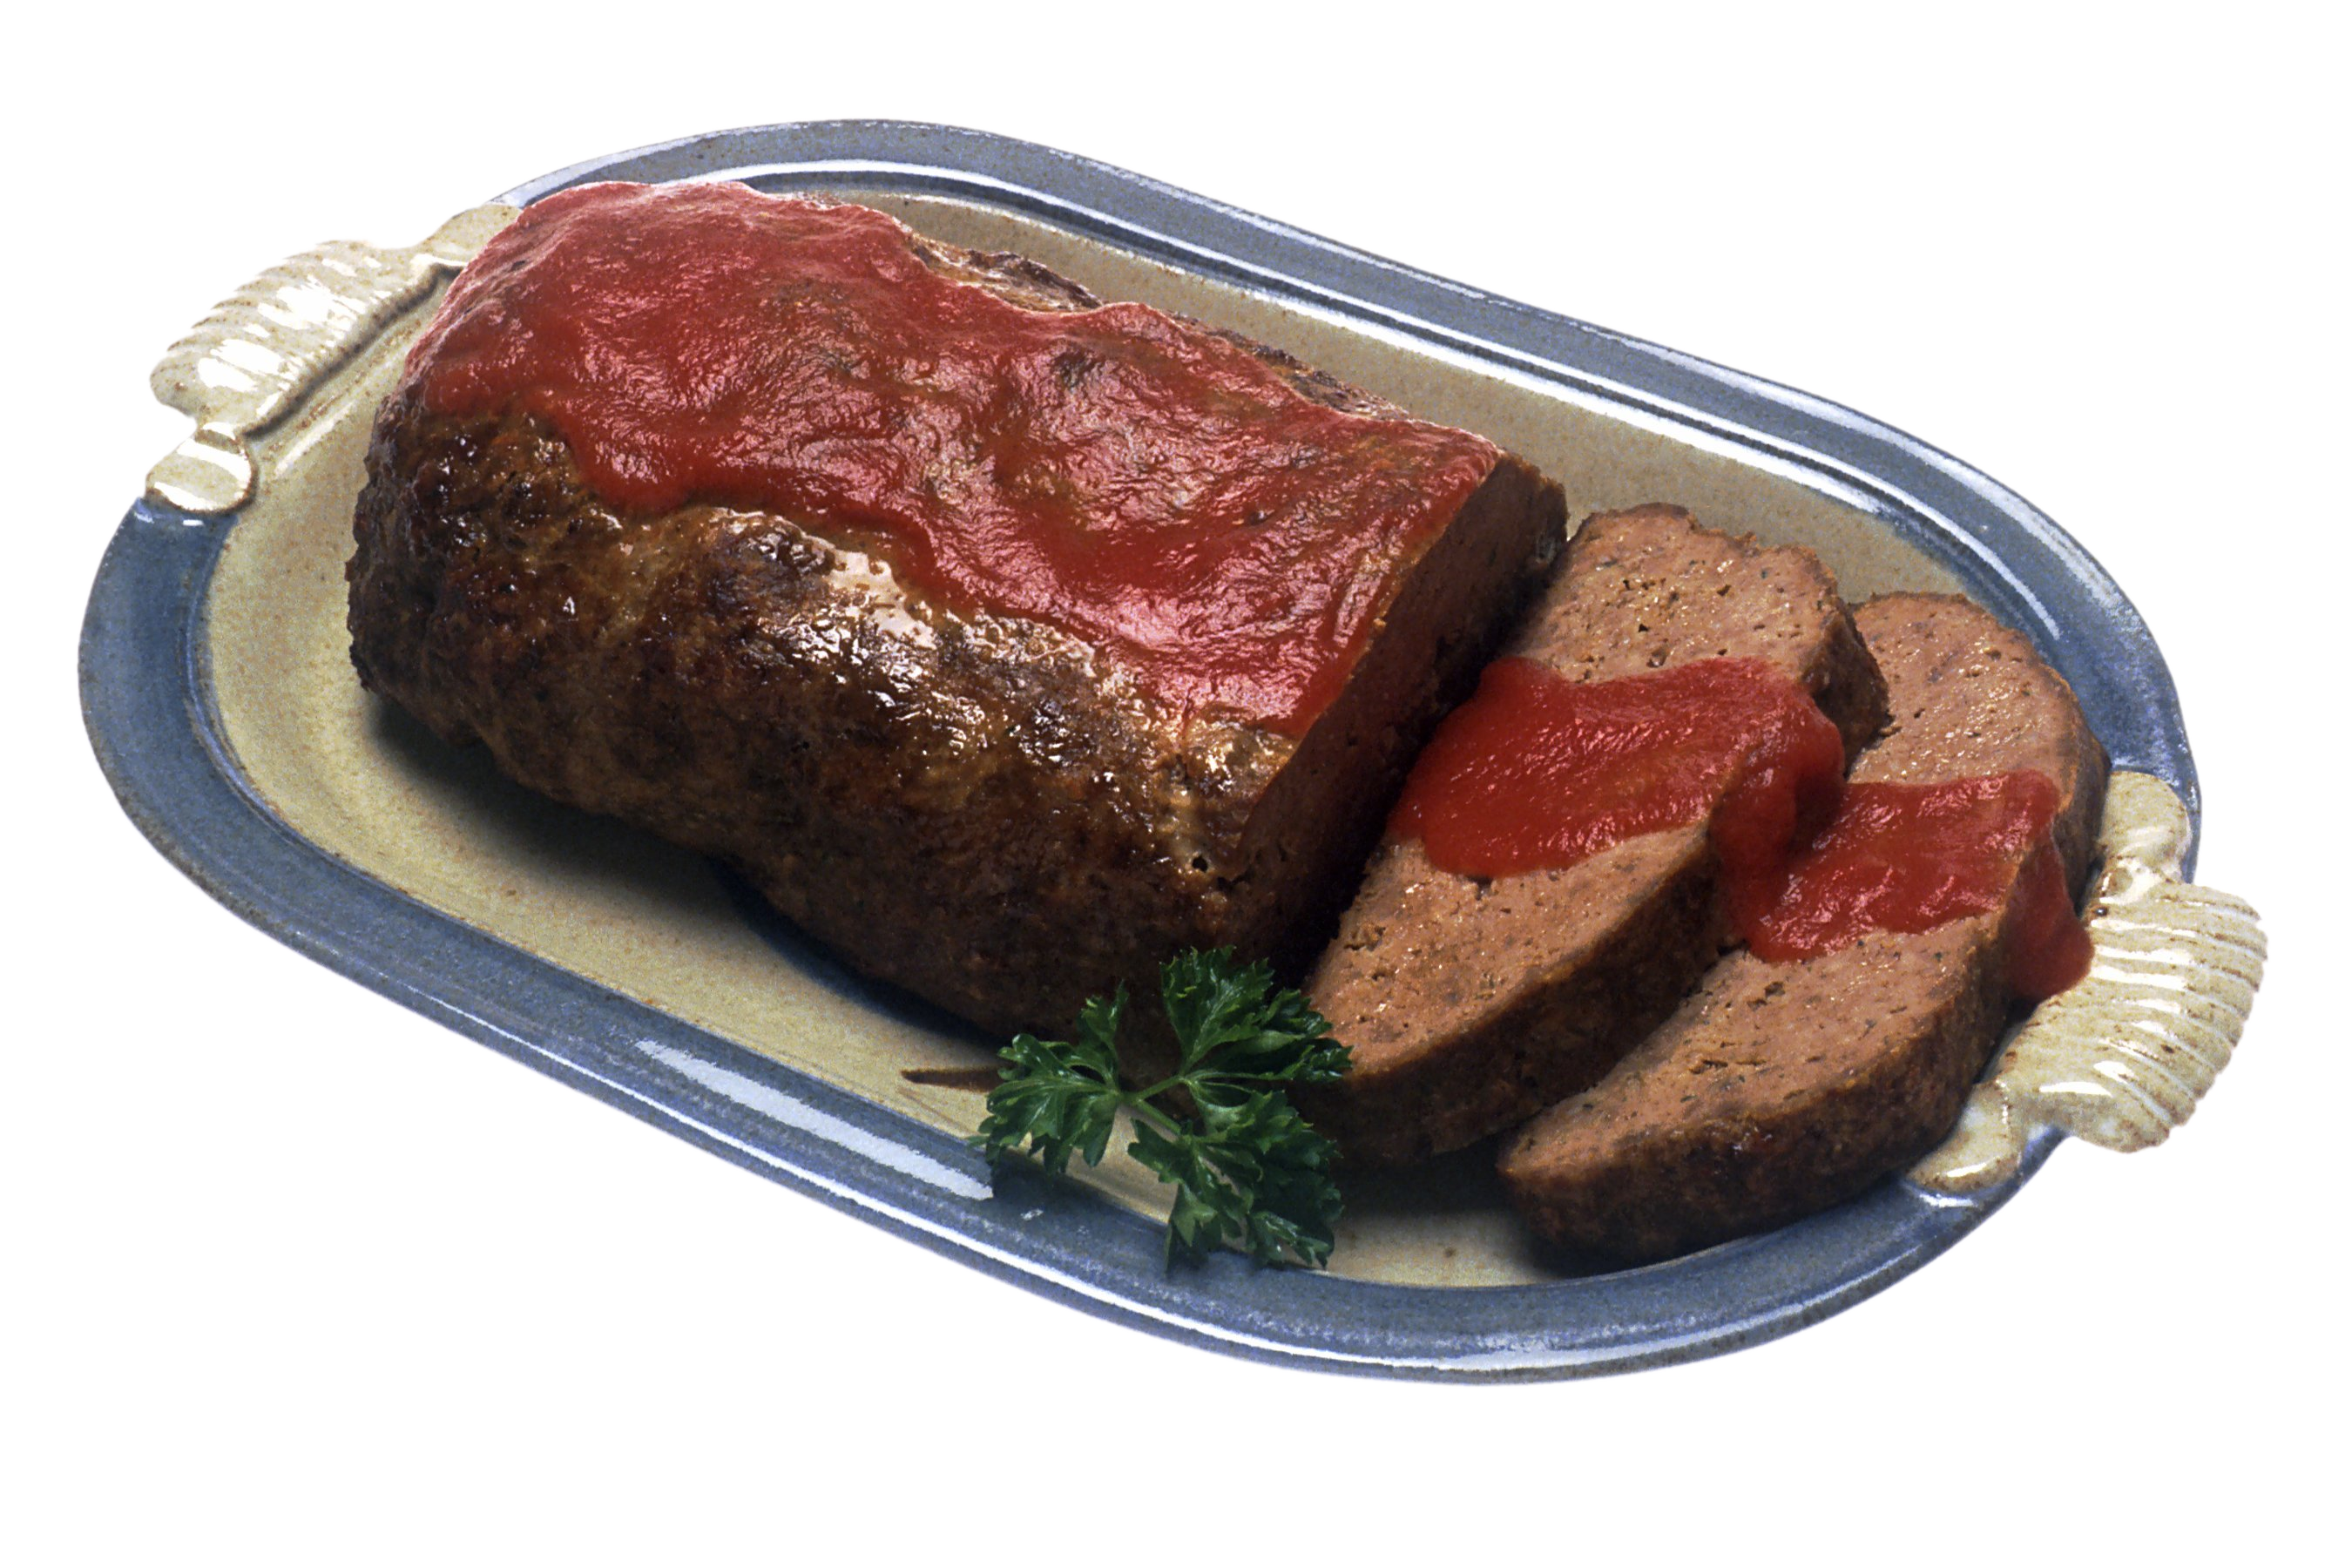 meatloaf served with sauce.